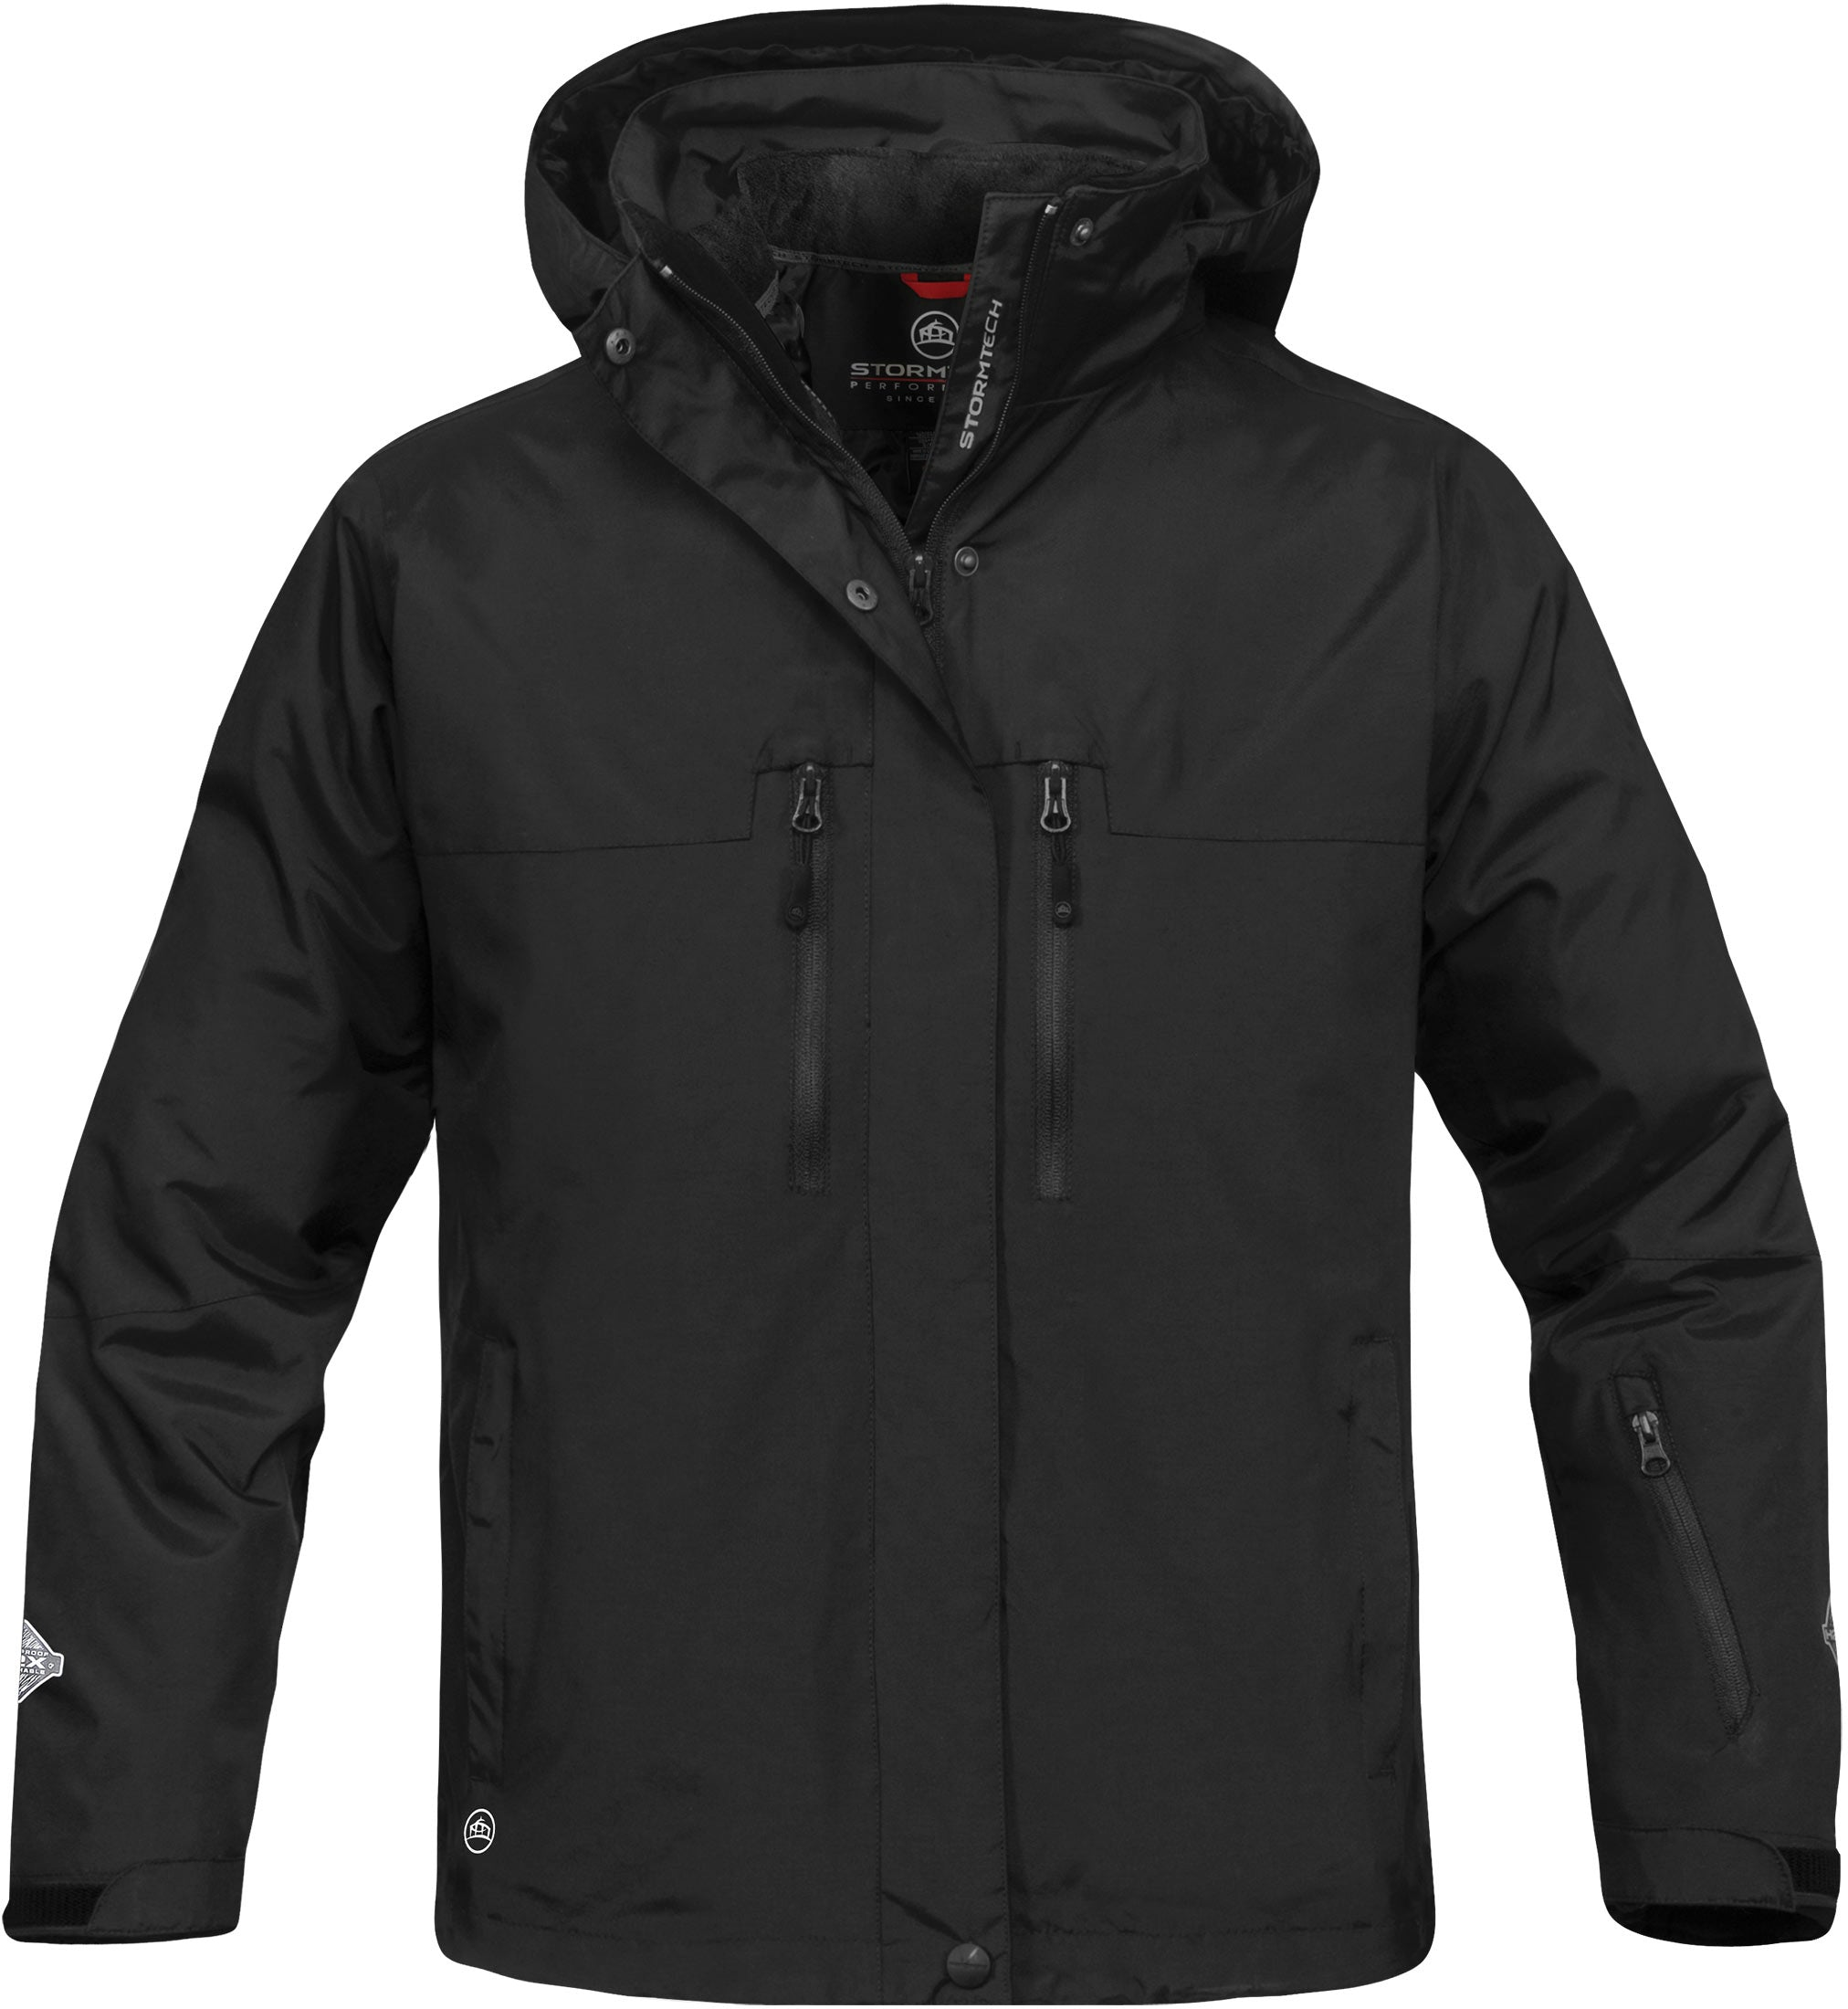 STORMTECH LADIES RANGER 3-IN-1 SYSTEM JACKET